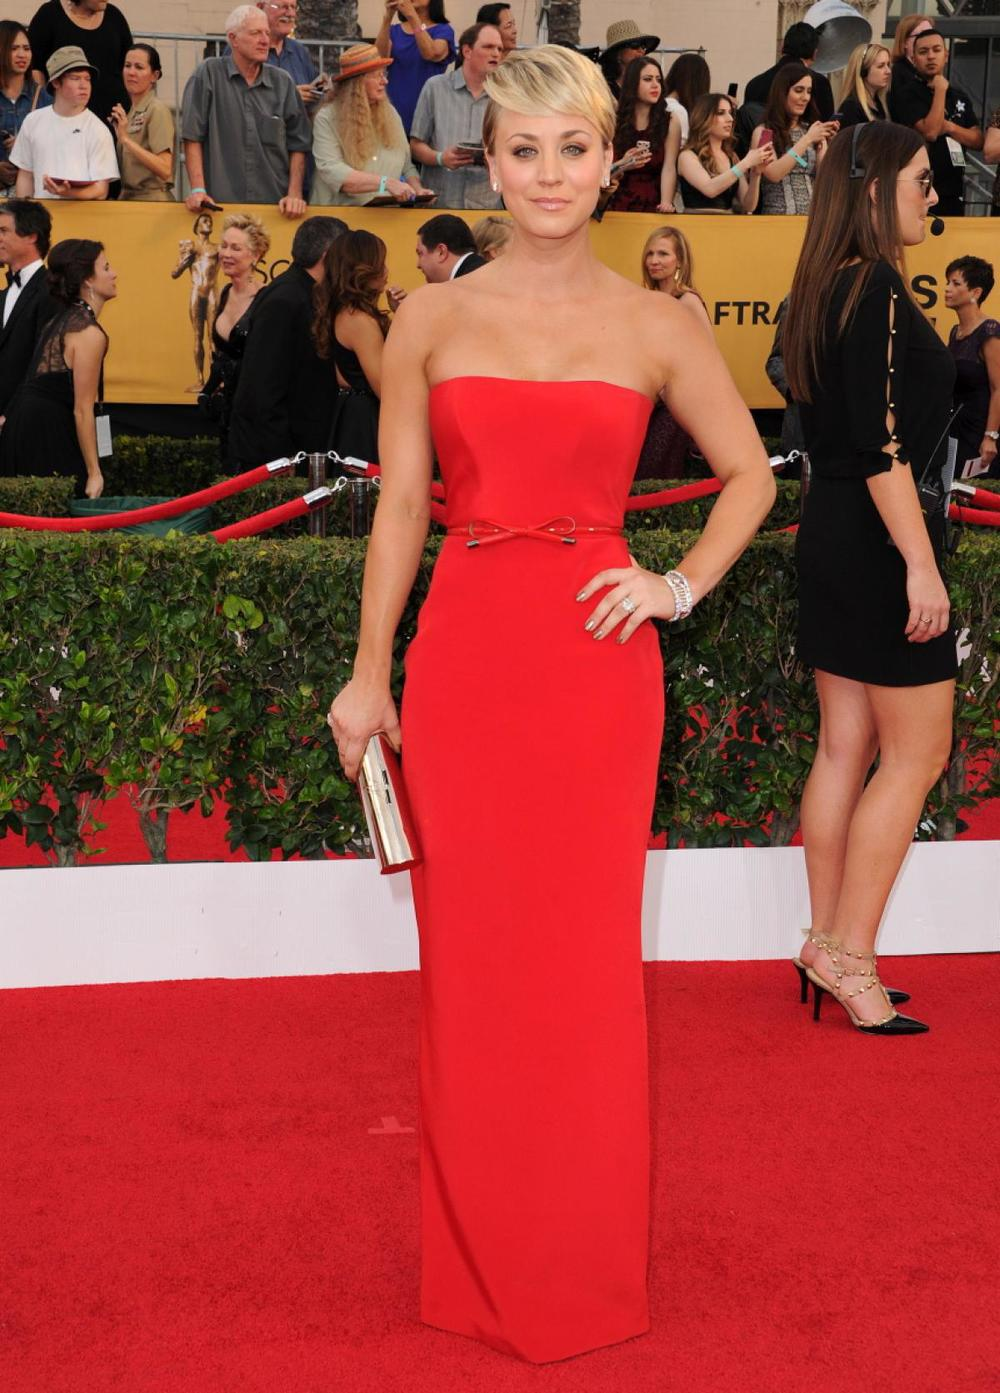 """Kaley Cuoco was a lady in red."" - The Daily News ""She looks like a modern day Grace Kelly."" - Hollywood Life ""One of our top five looks."" - People Style Watch ""Kaley Cuoco sizzles in red."" - The Daily Mail"